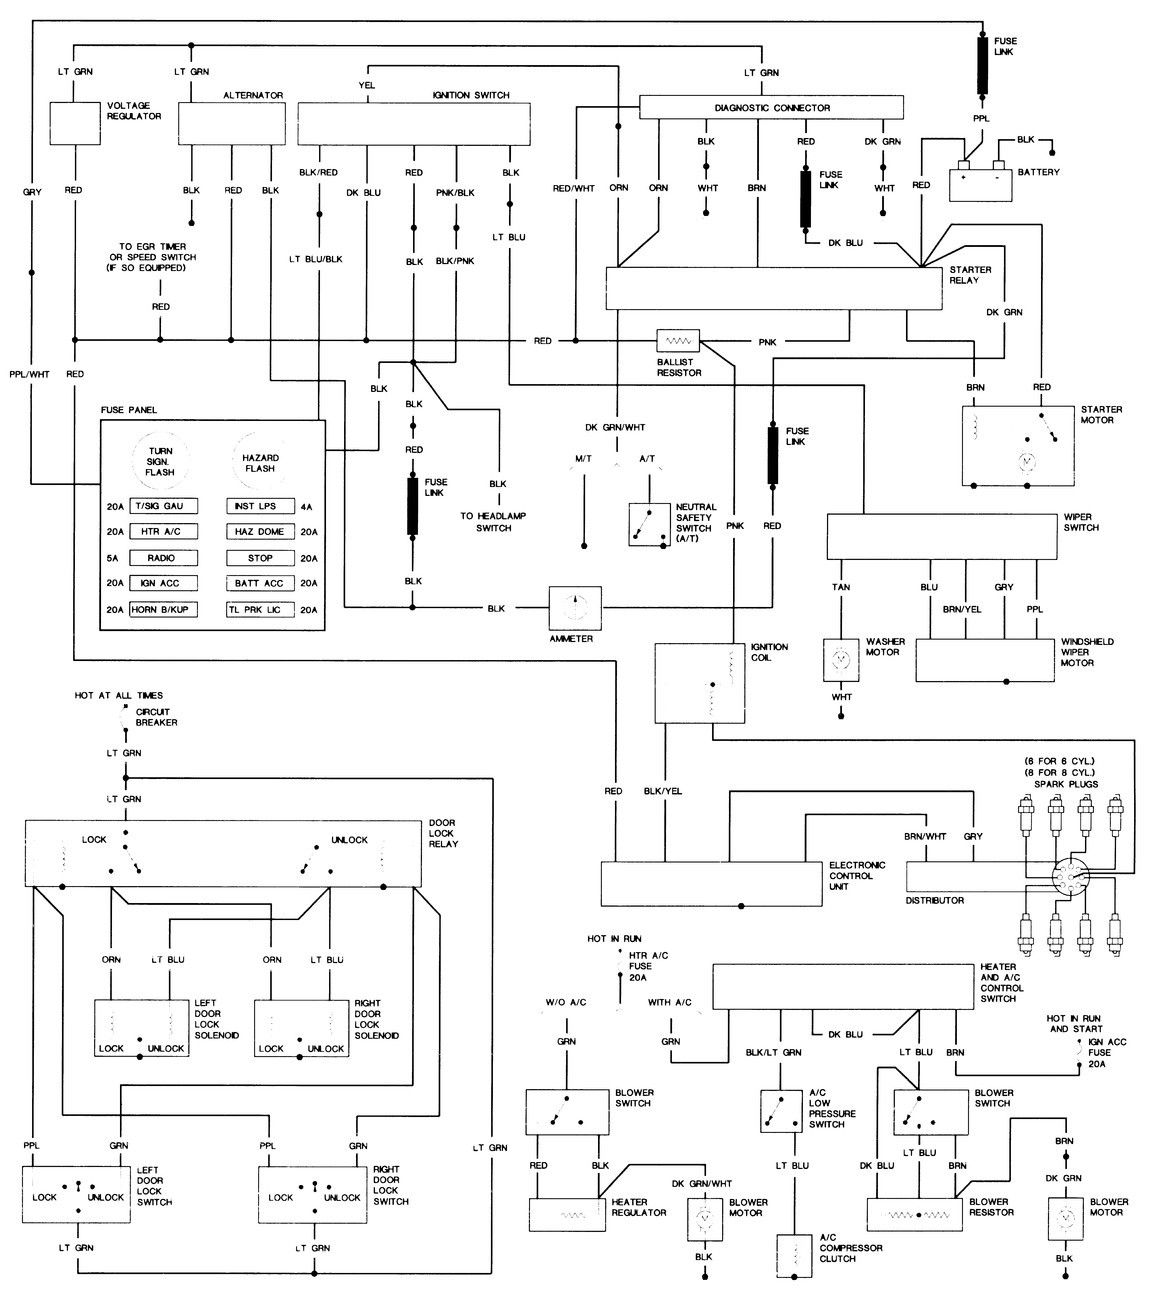 1979 Toyota Alternator Wiring Diagram Data On Corolla Externally Dodge Trusted Diagrams Rh Hamze Co 1985 Ford Truck